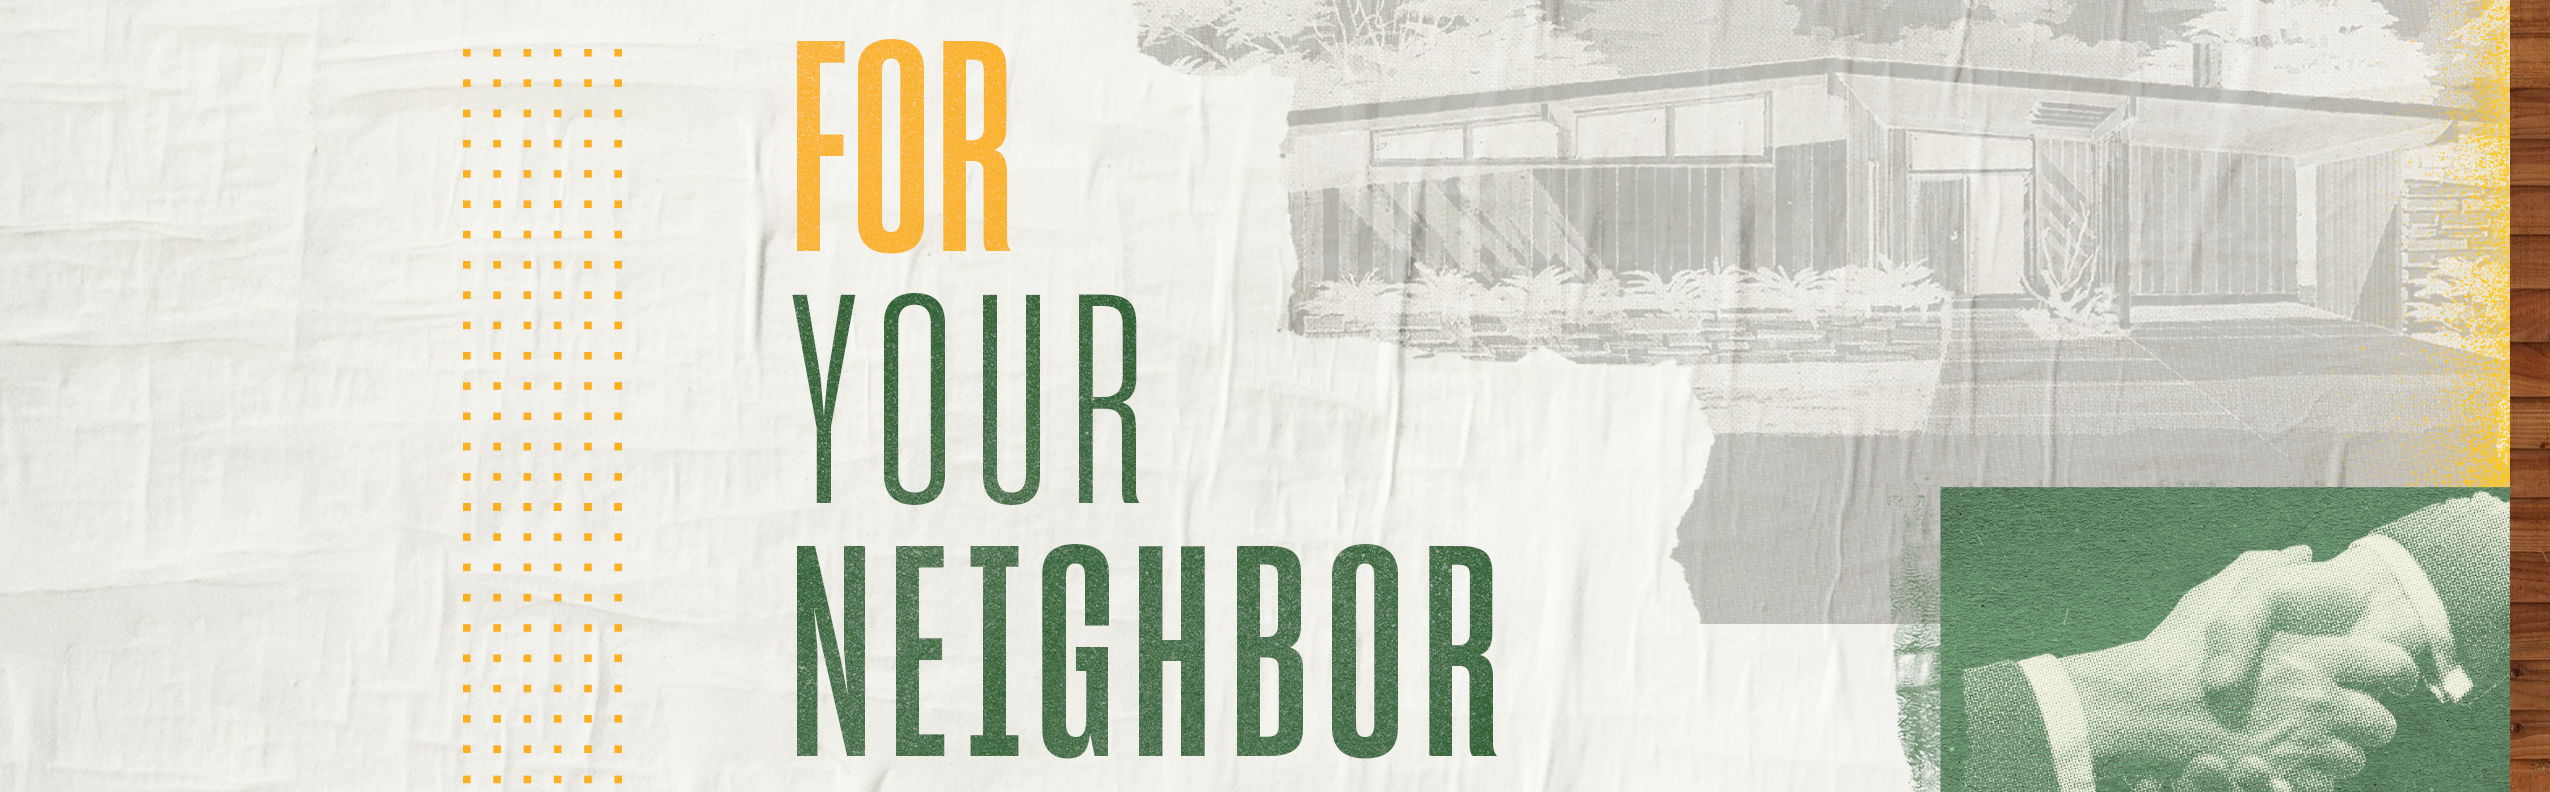 For Your Neighbor9